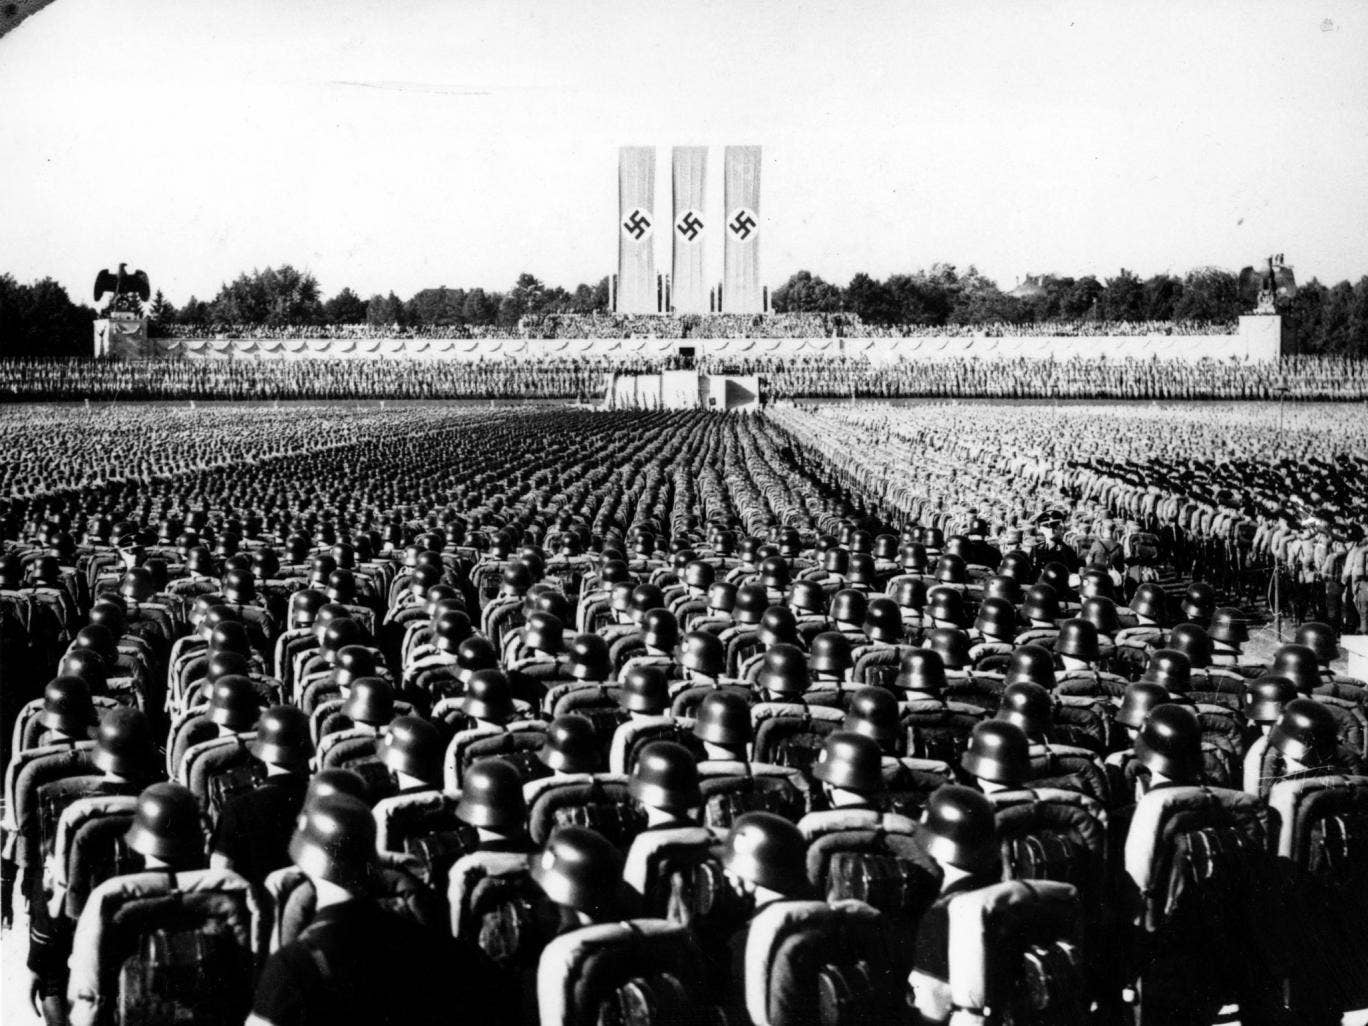 Nearly 100,000 Nazi storm troopers are gathered at Luitpold arena to listen to a speech by Adolf Hitler on 'Brown Shirt Day'